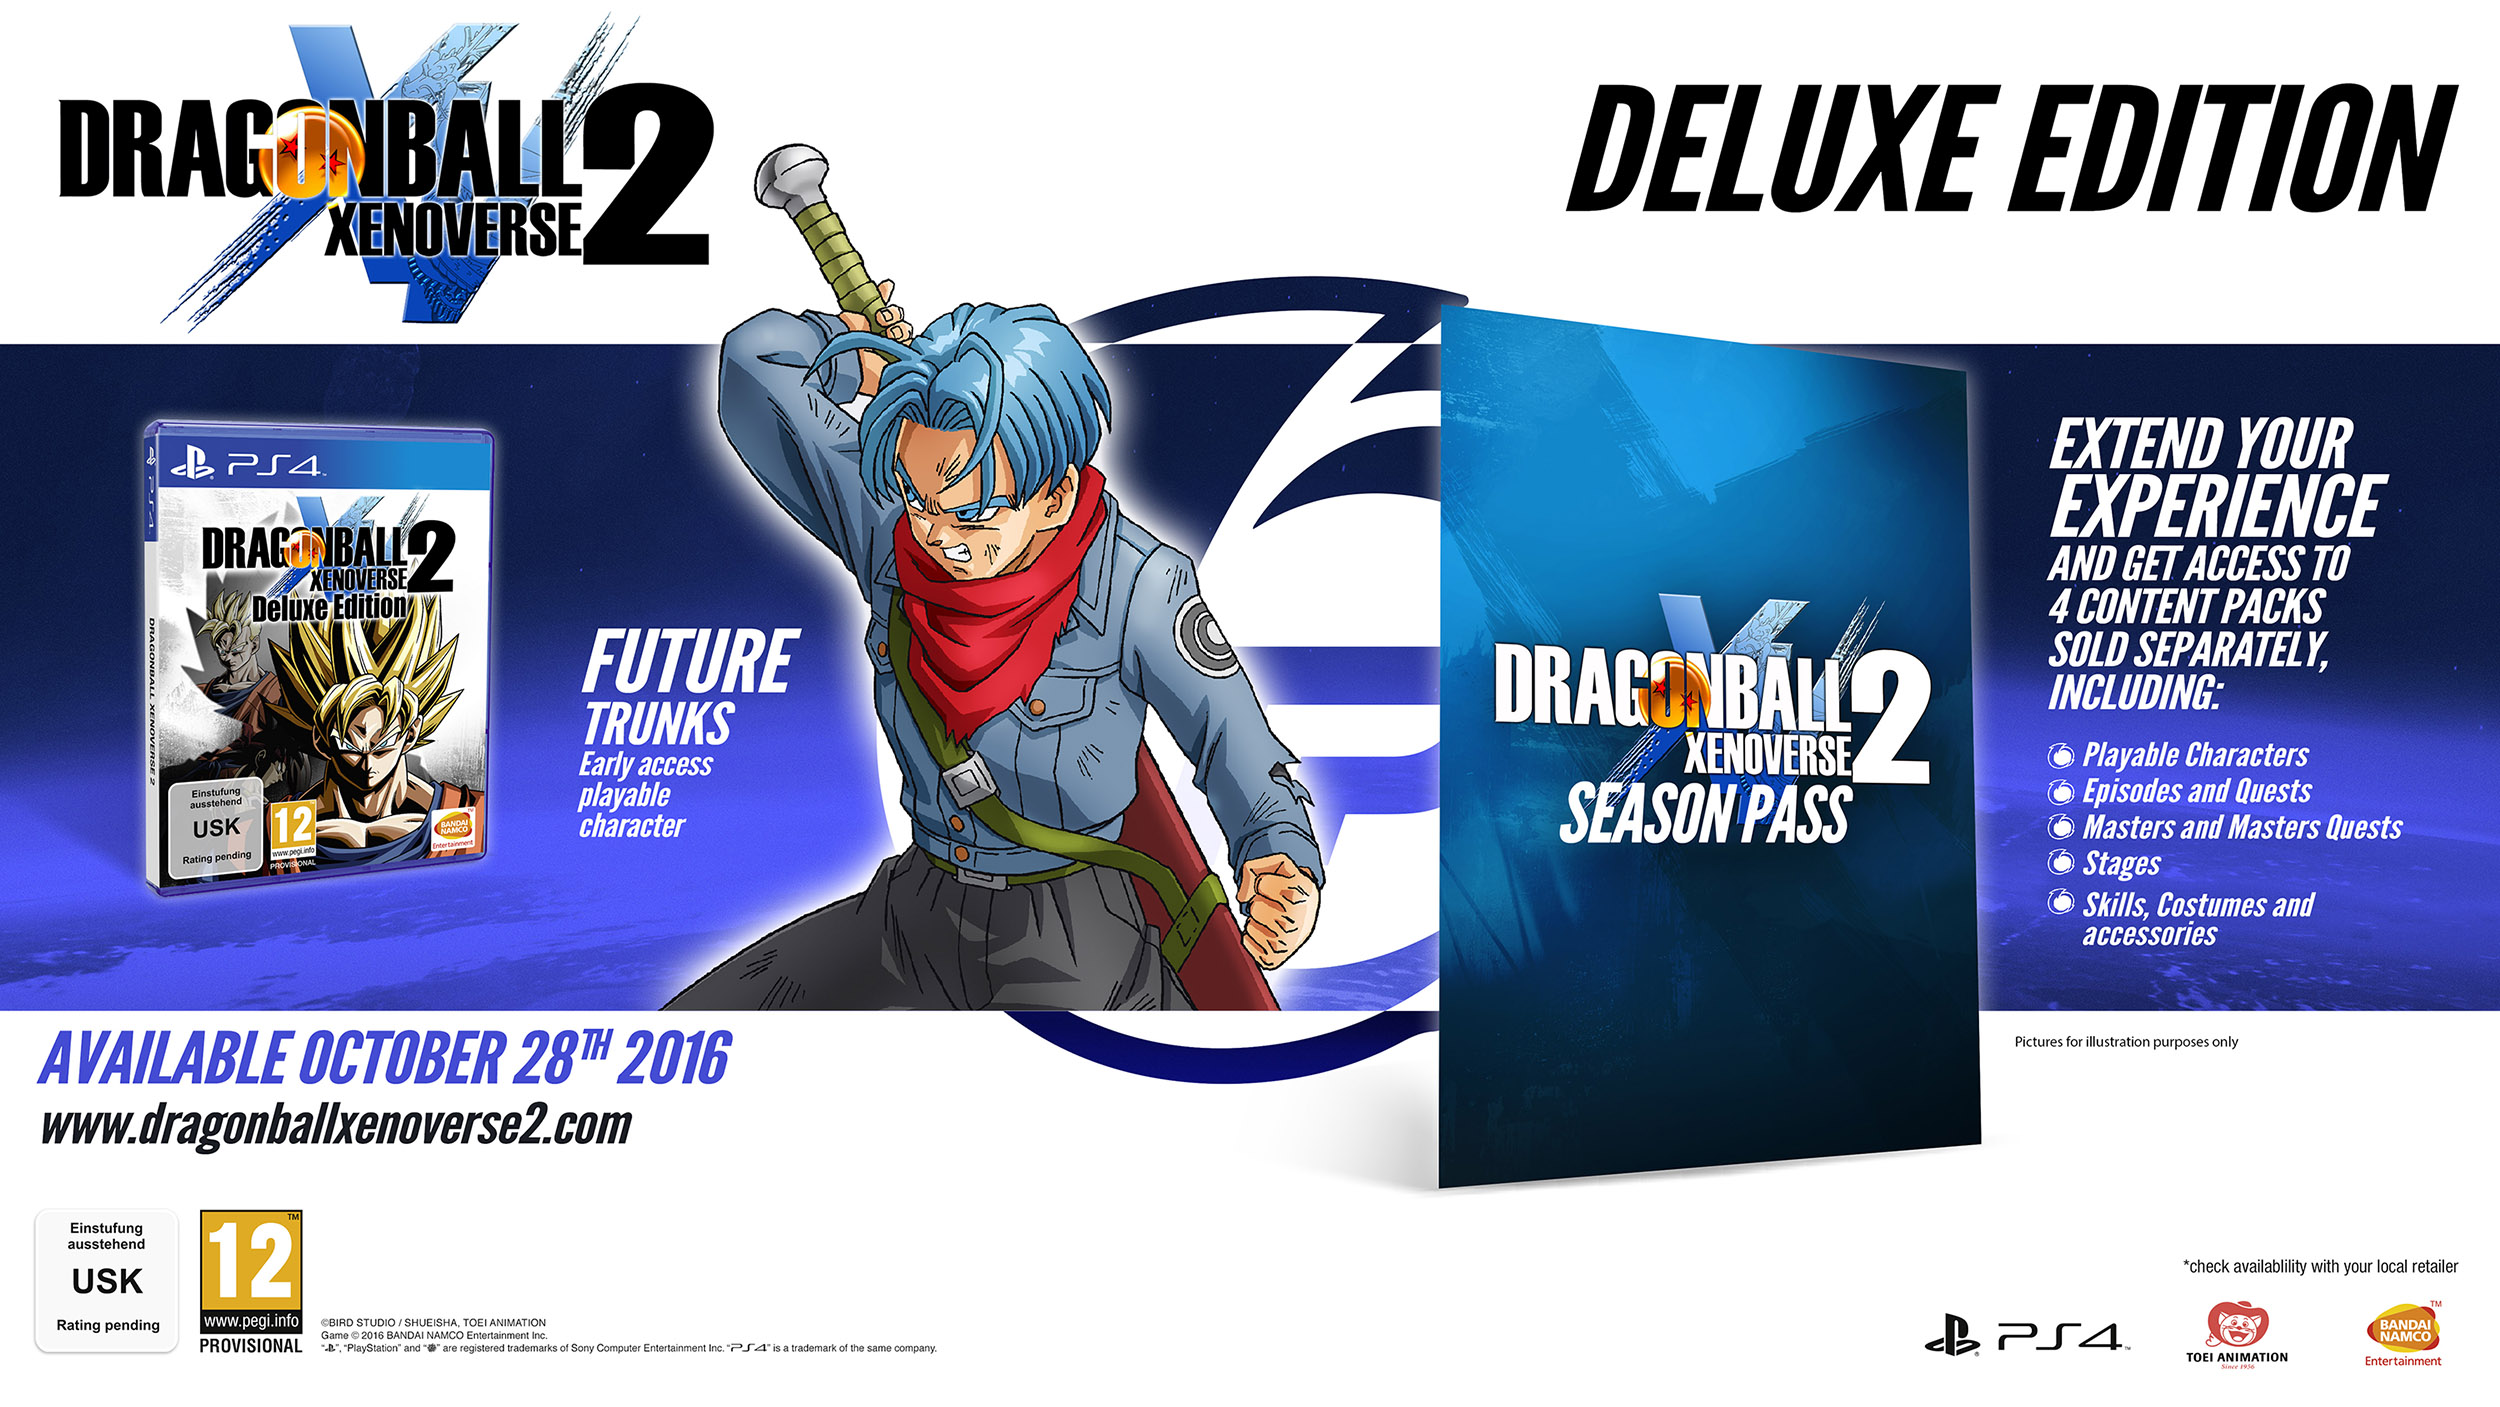 dbx2-mock-up-deluxe-gb